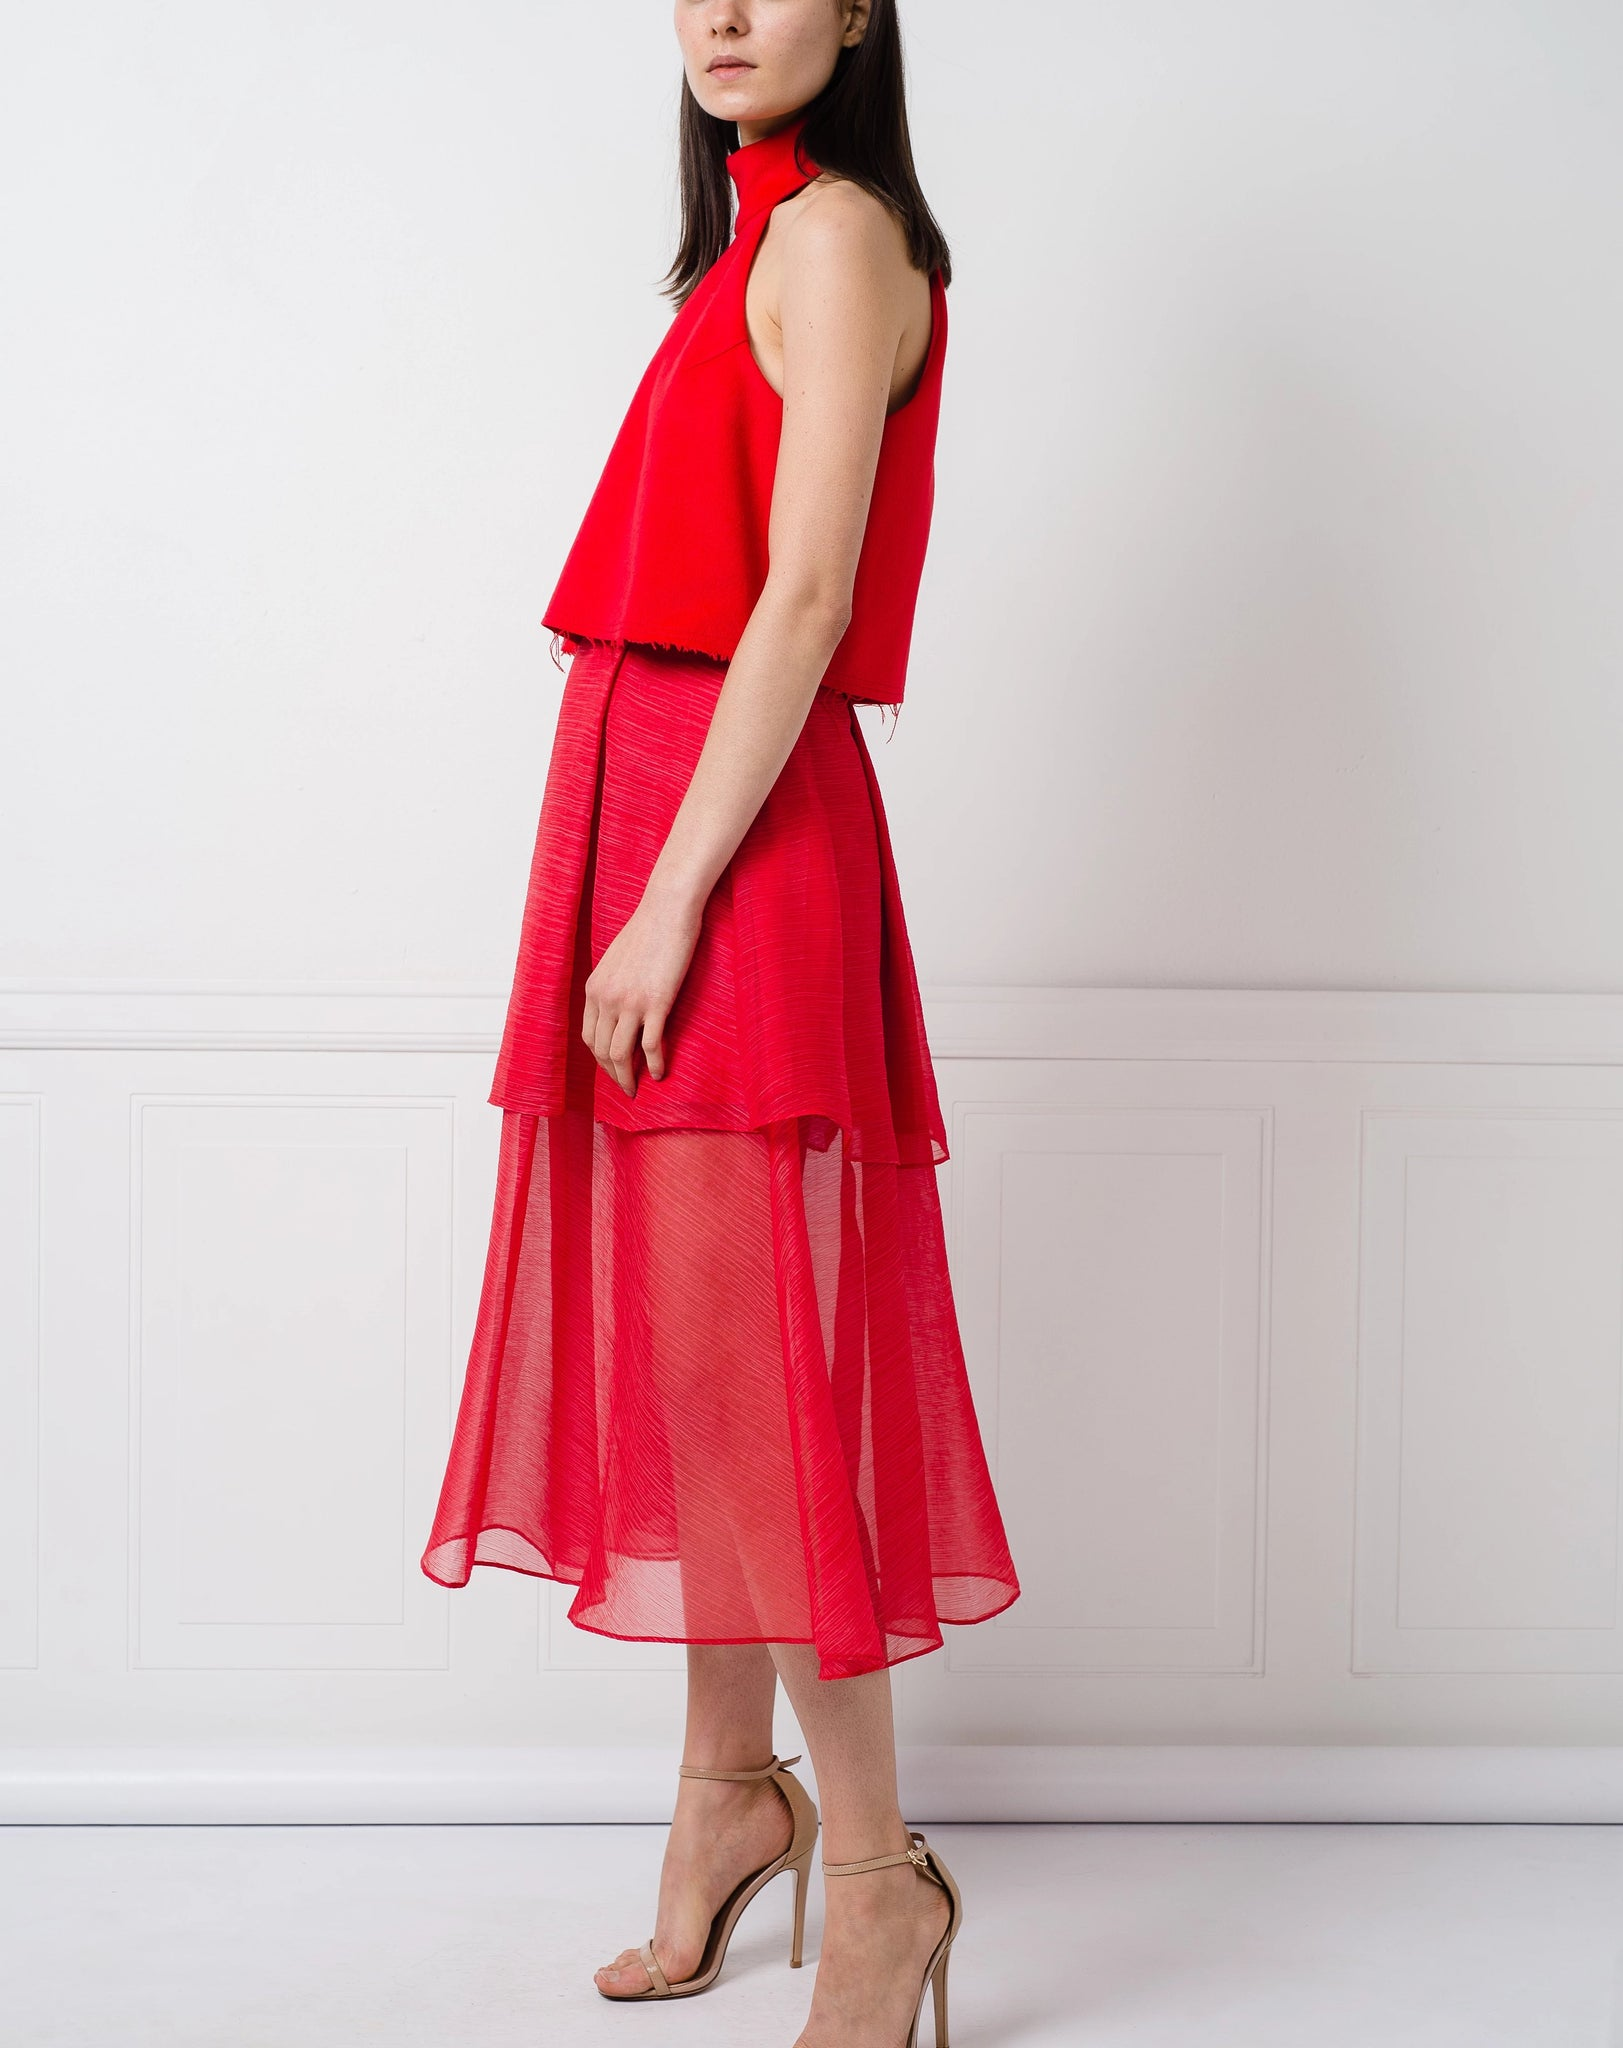 Dany Skirt in Red